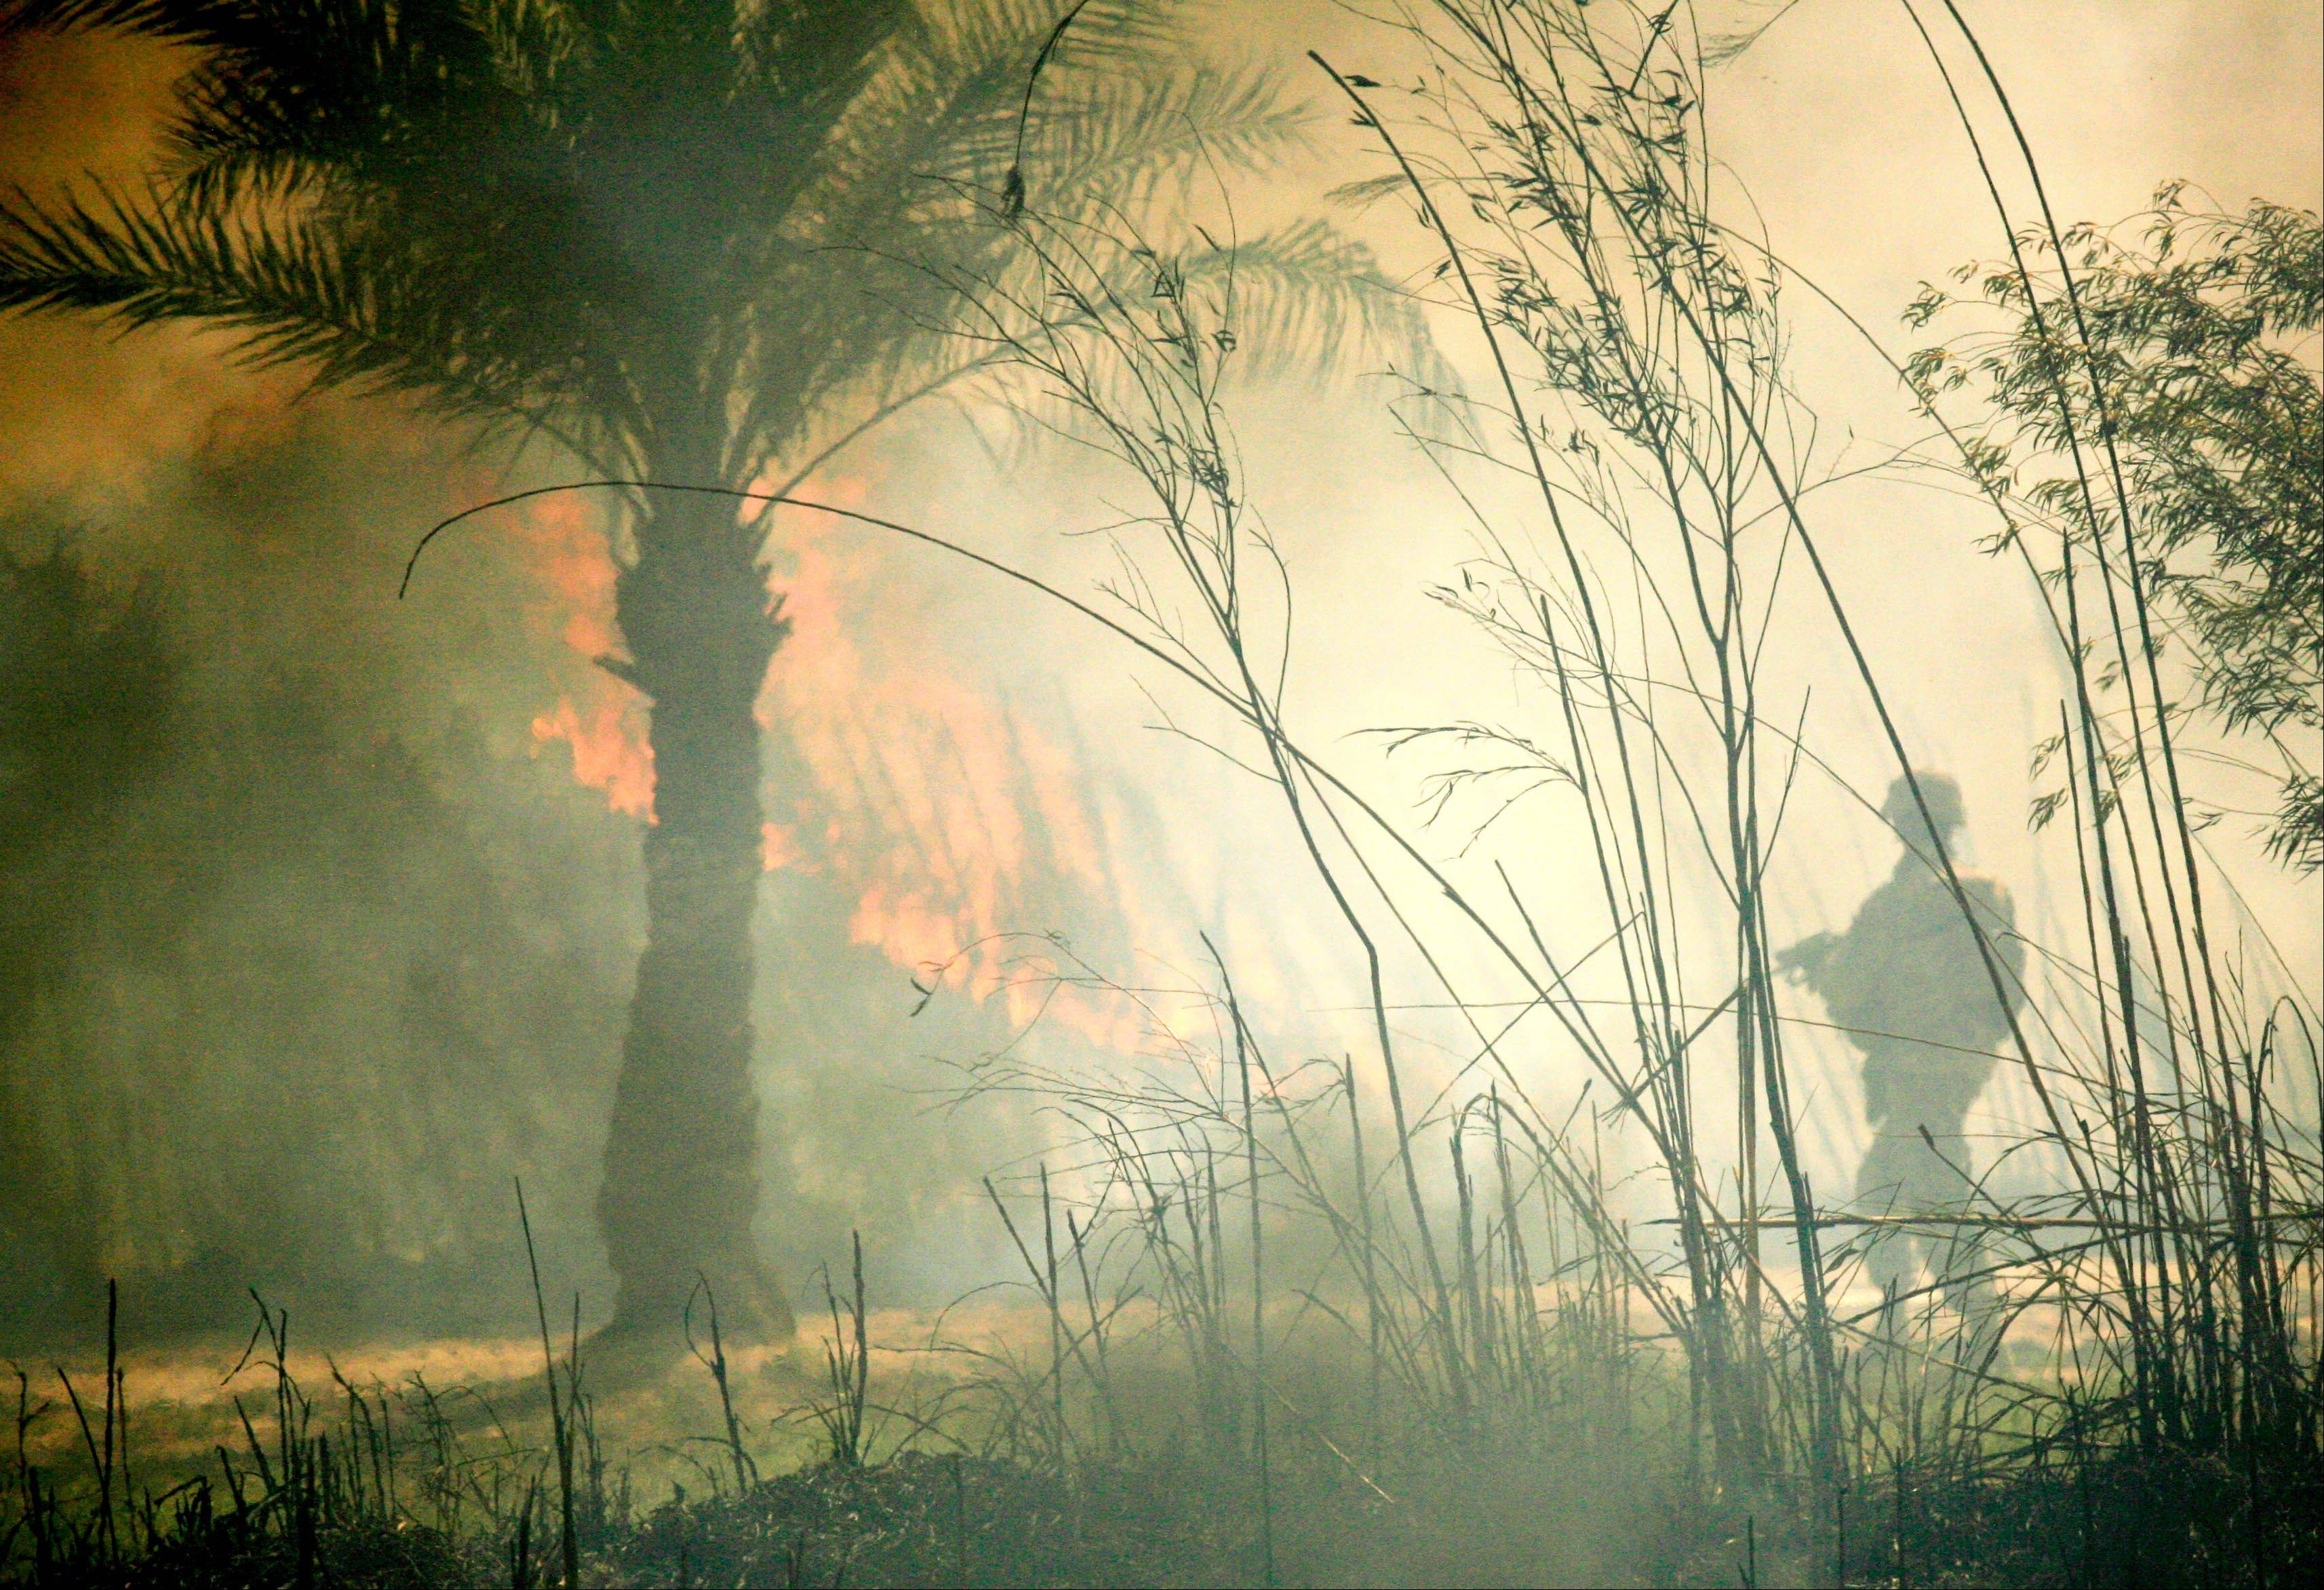 A soldier from the Alpha Company, 4th Battalion, 31st Infantry Regiment walks past burning reeds razed to prevent insurgents from seeking cover in Quarghuli village near Youssifiyah, 12 miles south of Baghdad, Iraq, Saturday, May 26, 2007, two weeks after a May 12 ambush left four U.S. soldiers and an Iraqi soldier dead and three missing.